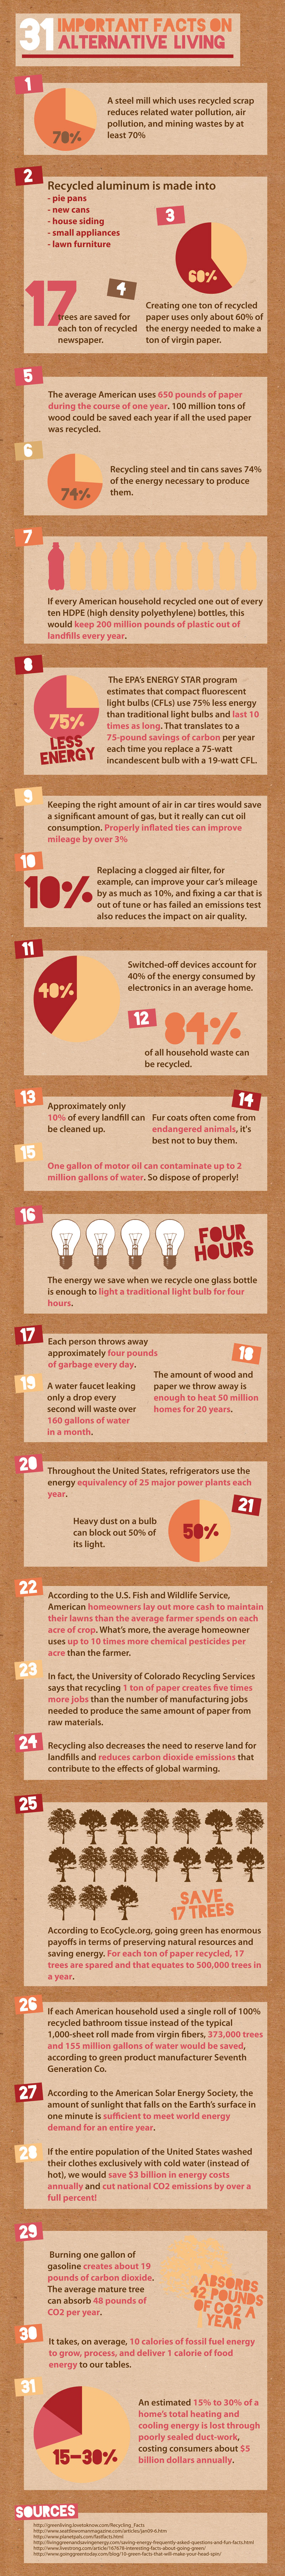 Alternative living & recycling facts infographic